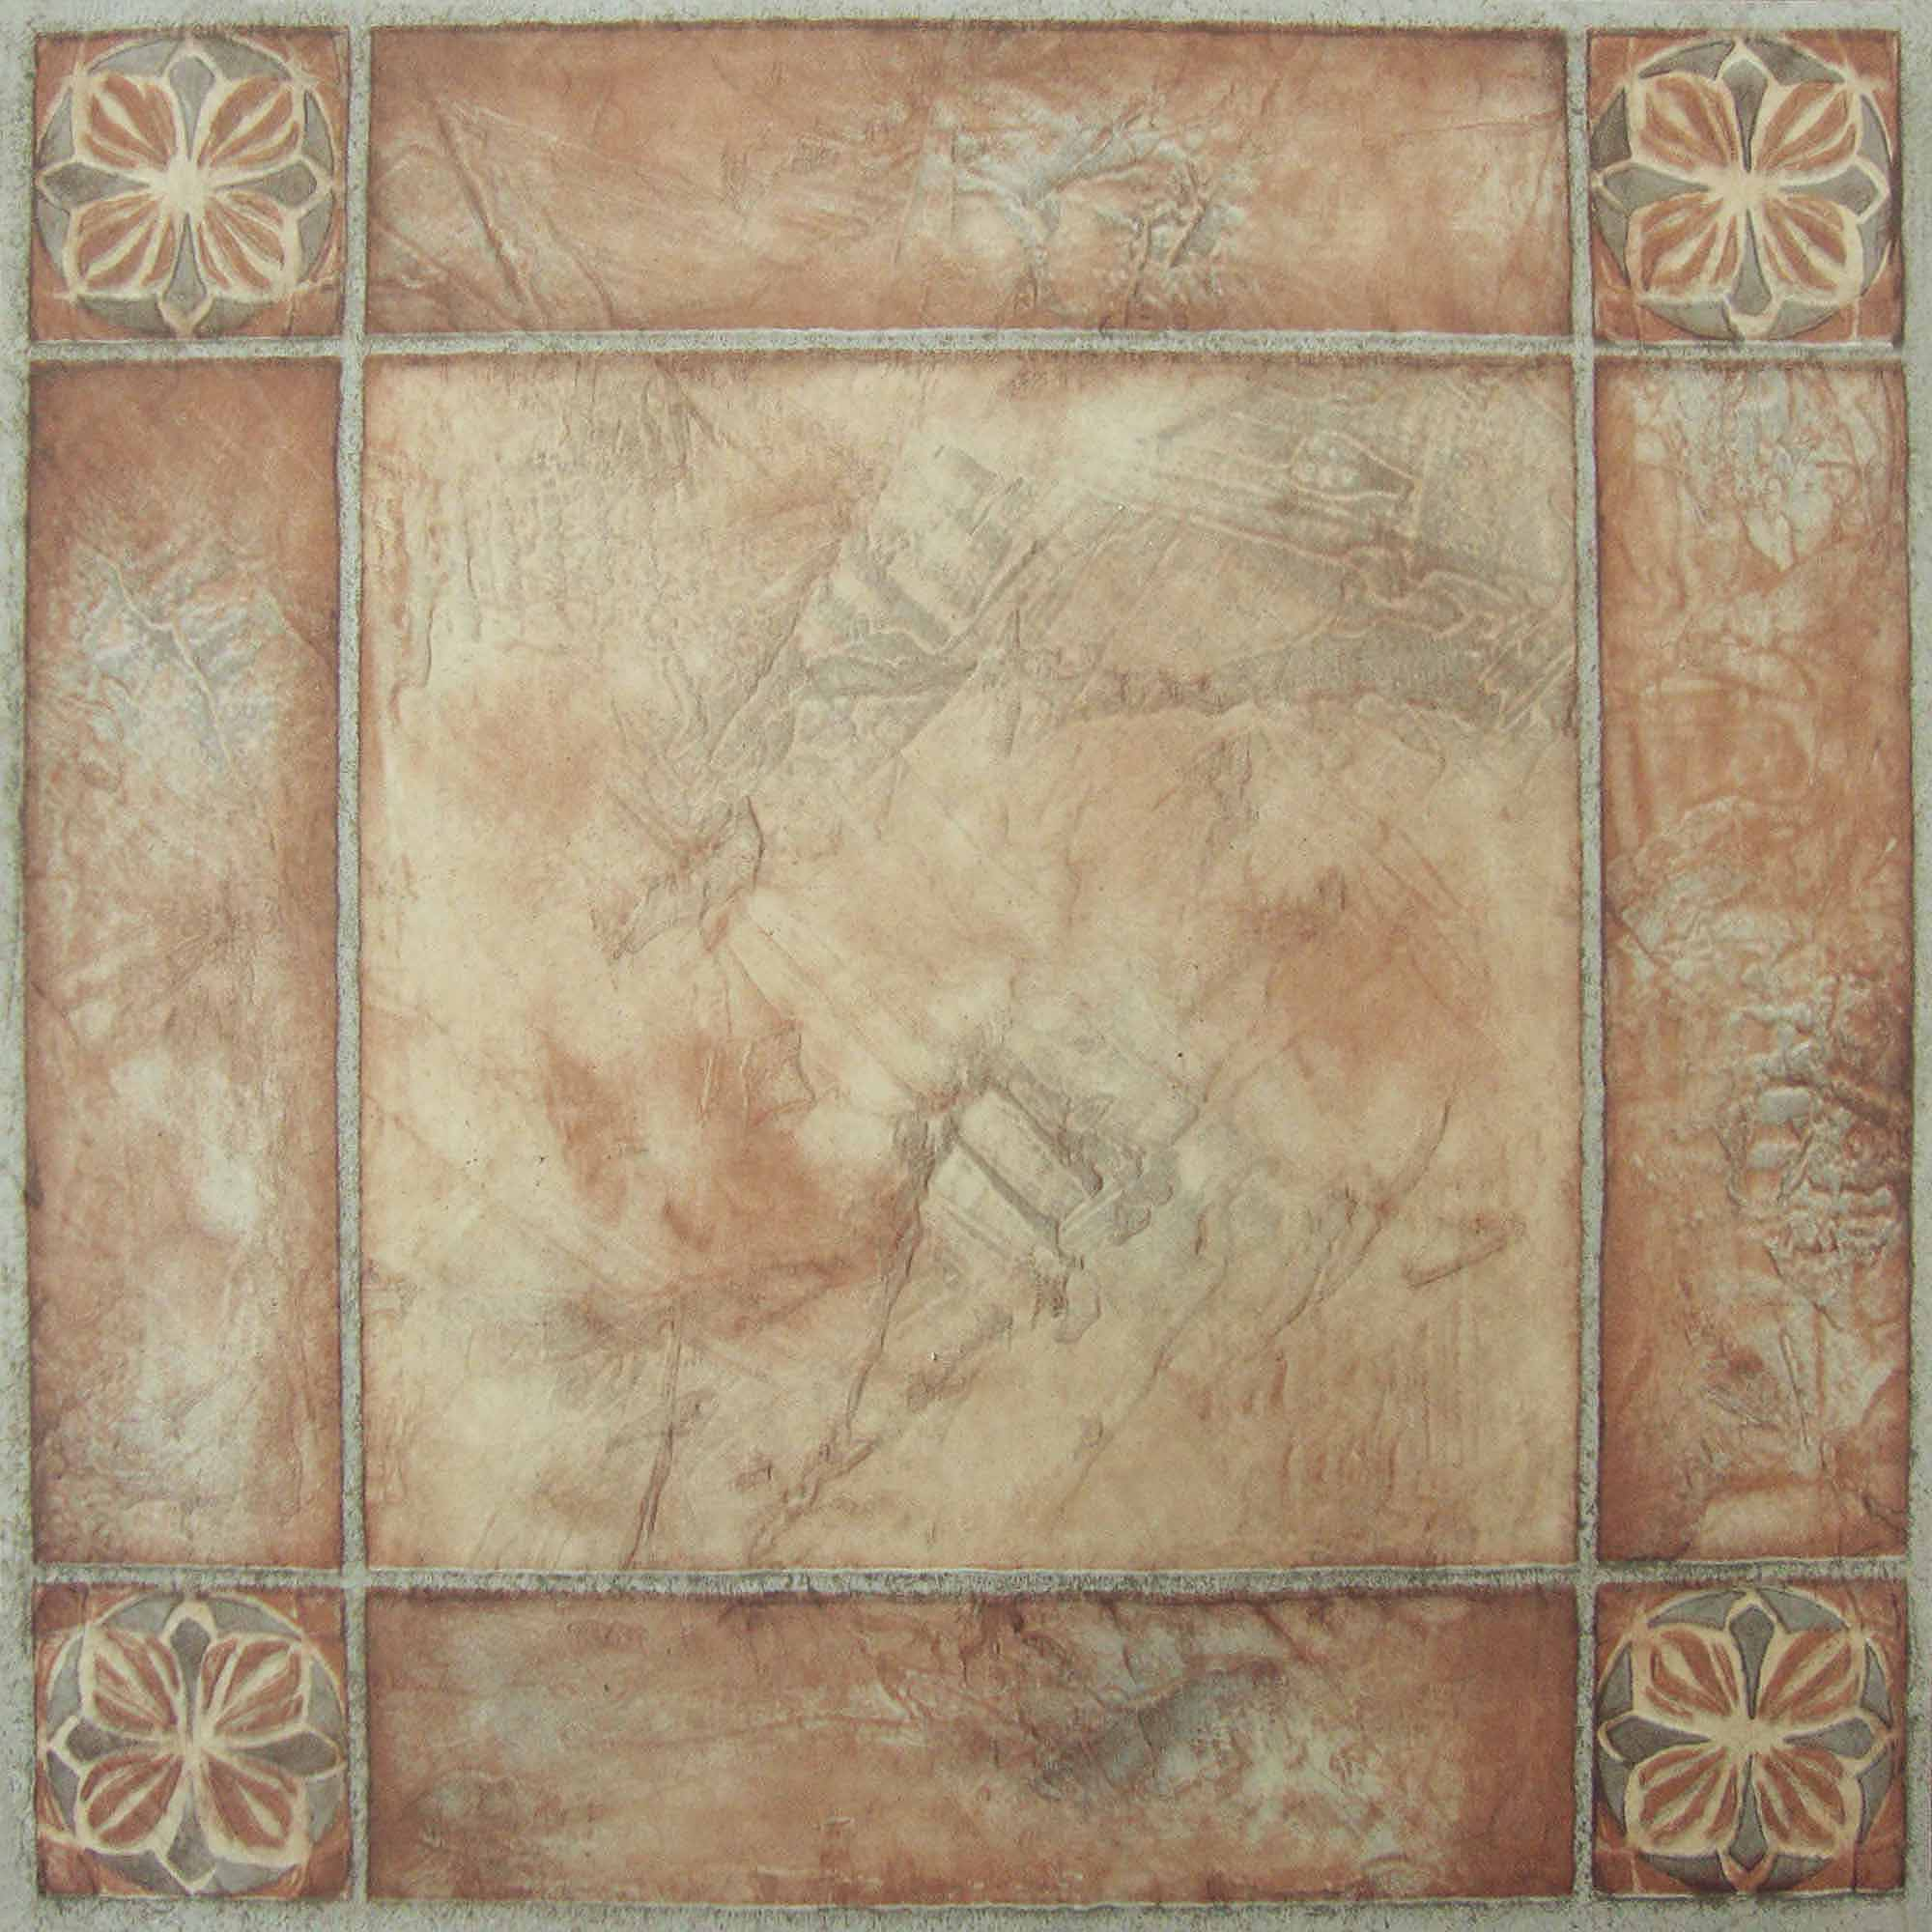 NEXUS Spanish Rose 12x12 Self Adhesive Vinyl Floor Tile - 20 Tiles/20 Sq.Ft.